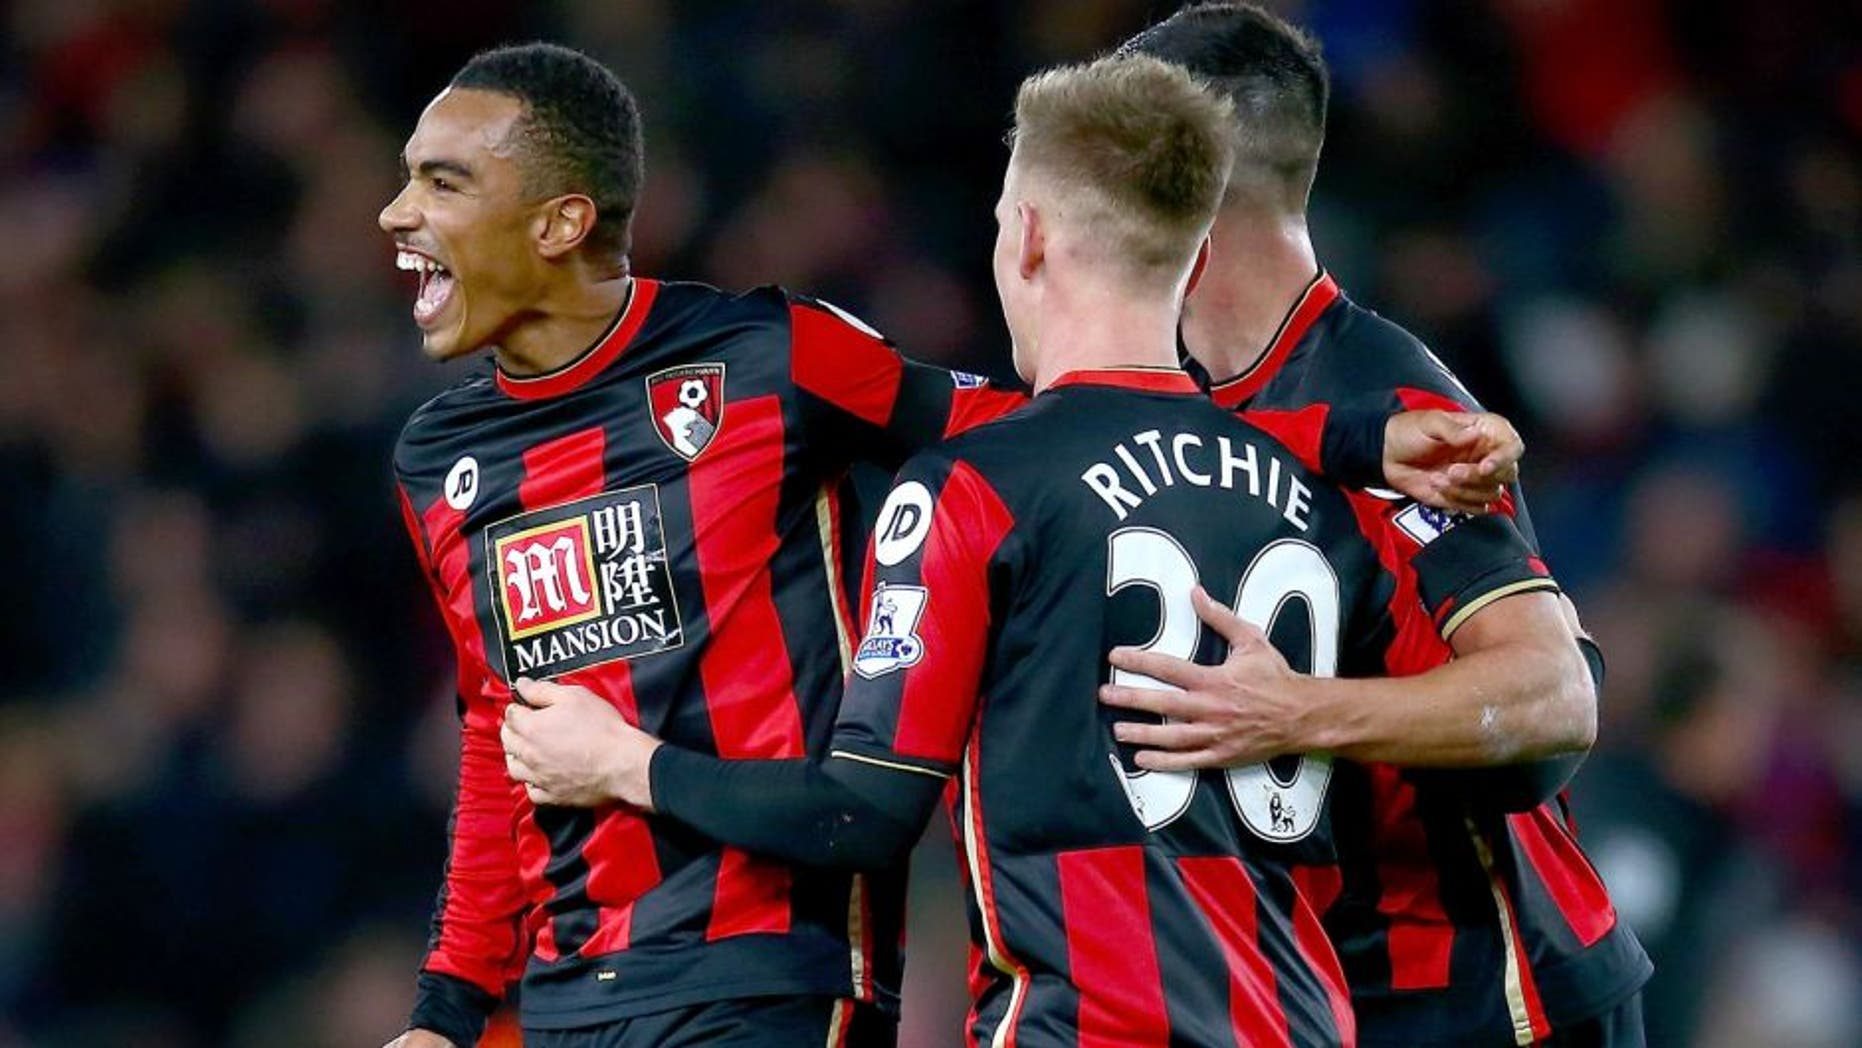 BOURNEMOUTH, ENGLAND - DECEMBER 12: Matt Ritchie, Junior Stanislas and Andrew Surman of Bournemouth celebrate after the final whistle in the Barclays Premier League match between A.F.C. Bournemouth and Manchester United at Vitality Stadium on December 12, 2015 in Bournemouth, United Kingdom. (Photo by Jordan Mansfield/Getty Images)